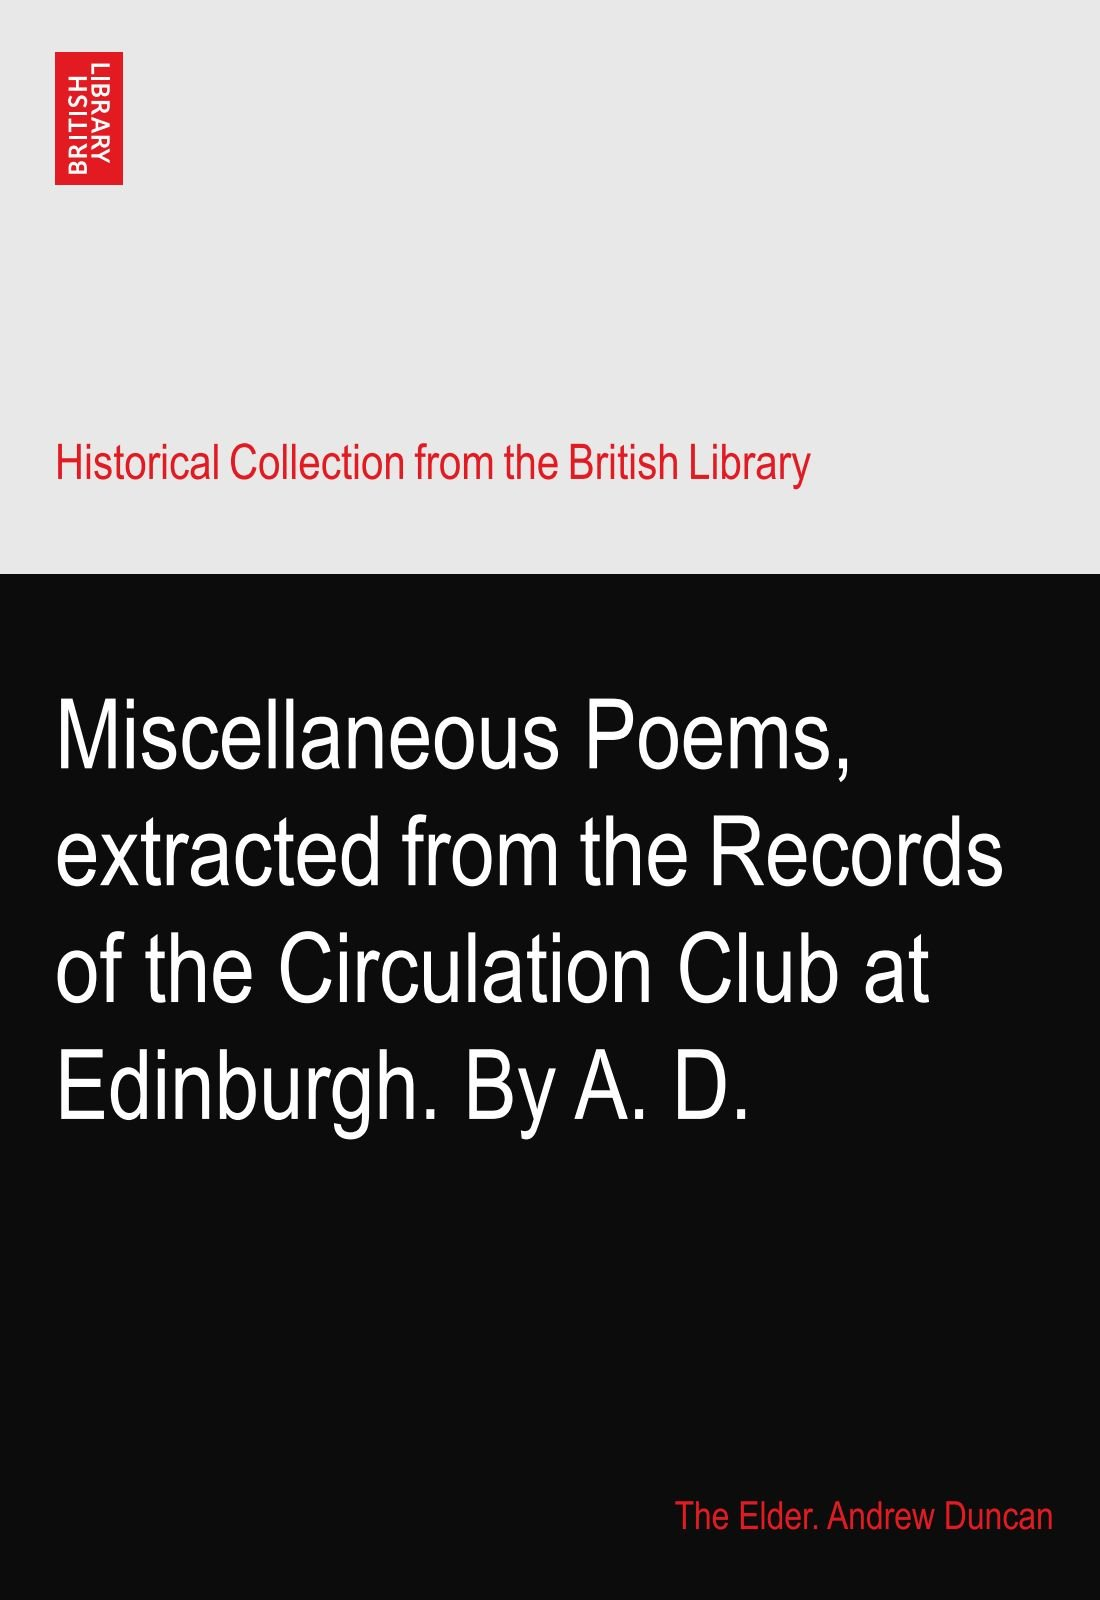 Miscellaneous Poems, extracted from the Records of the Circulation Club at Edinburgh. By A. D. pdf epub